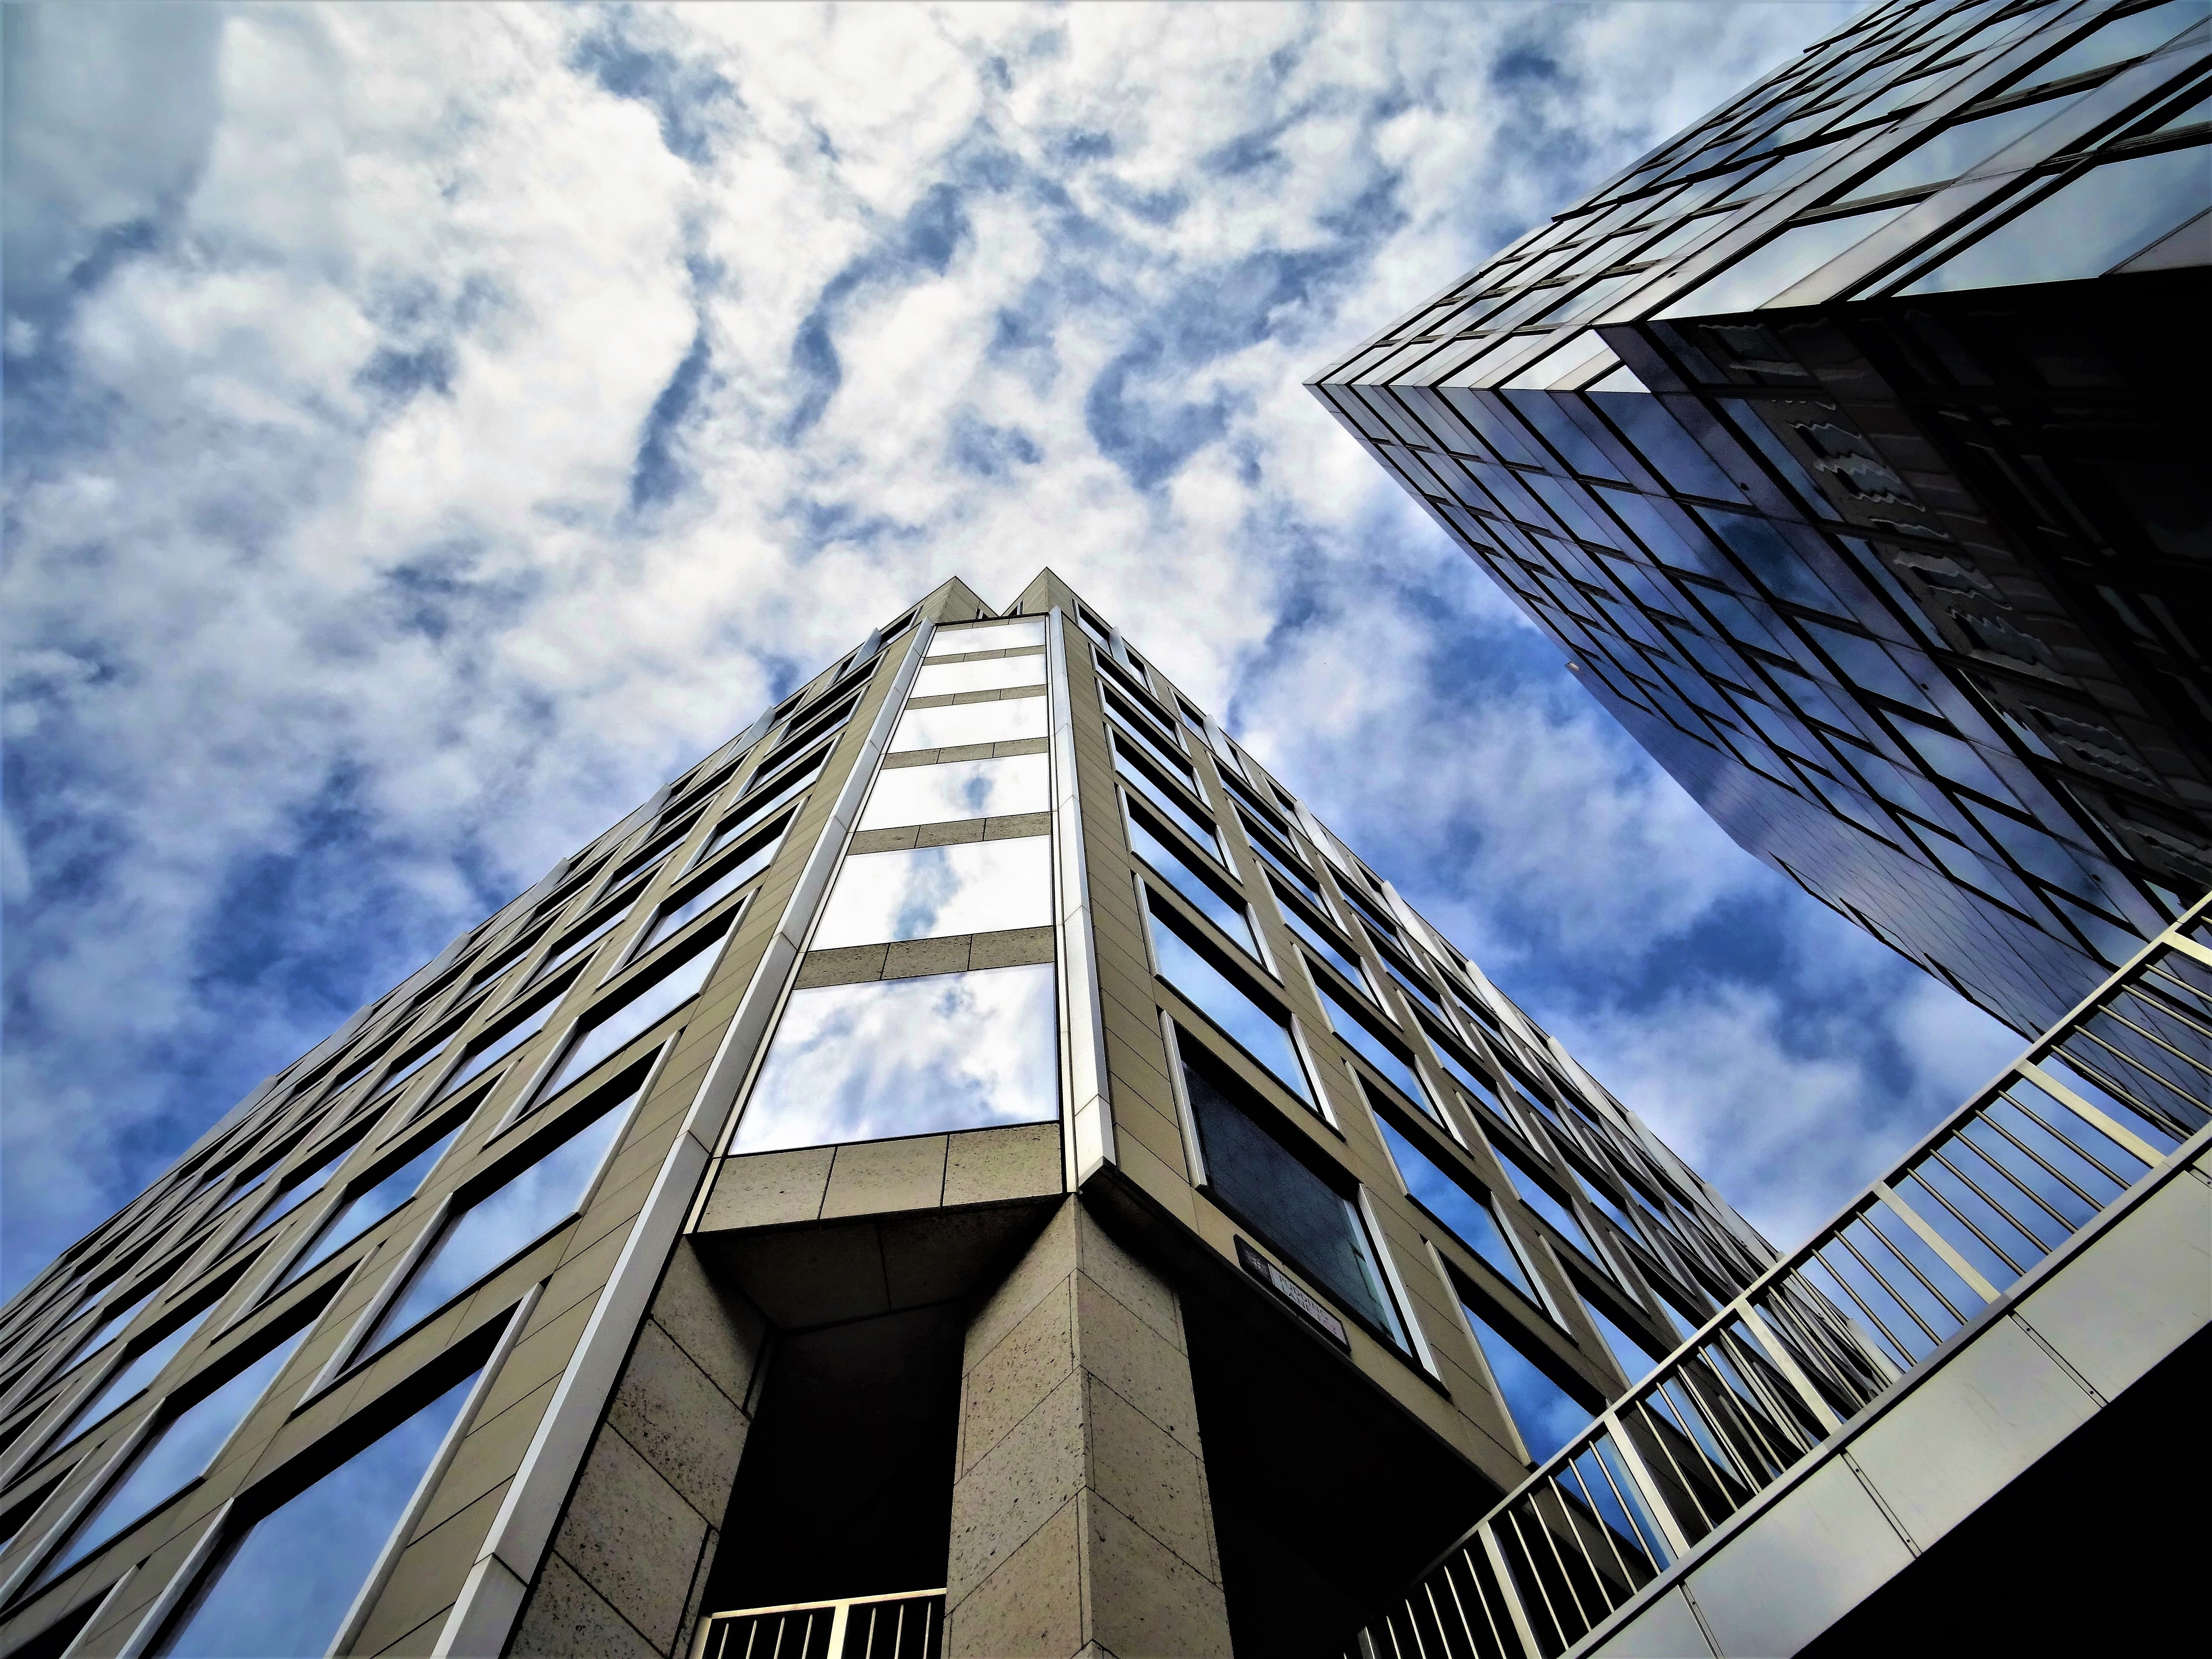 Low Angle Photography of High Rise Building, Architectural design, Modern, Steel, Skyscraper, HQ Photo